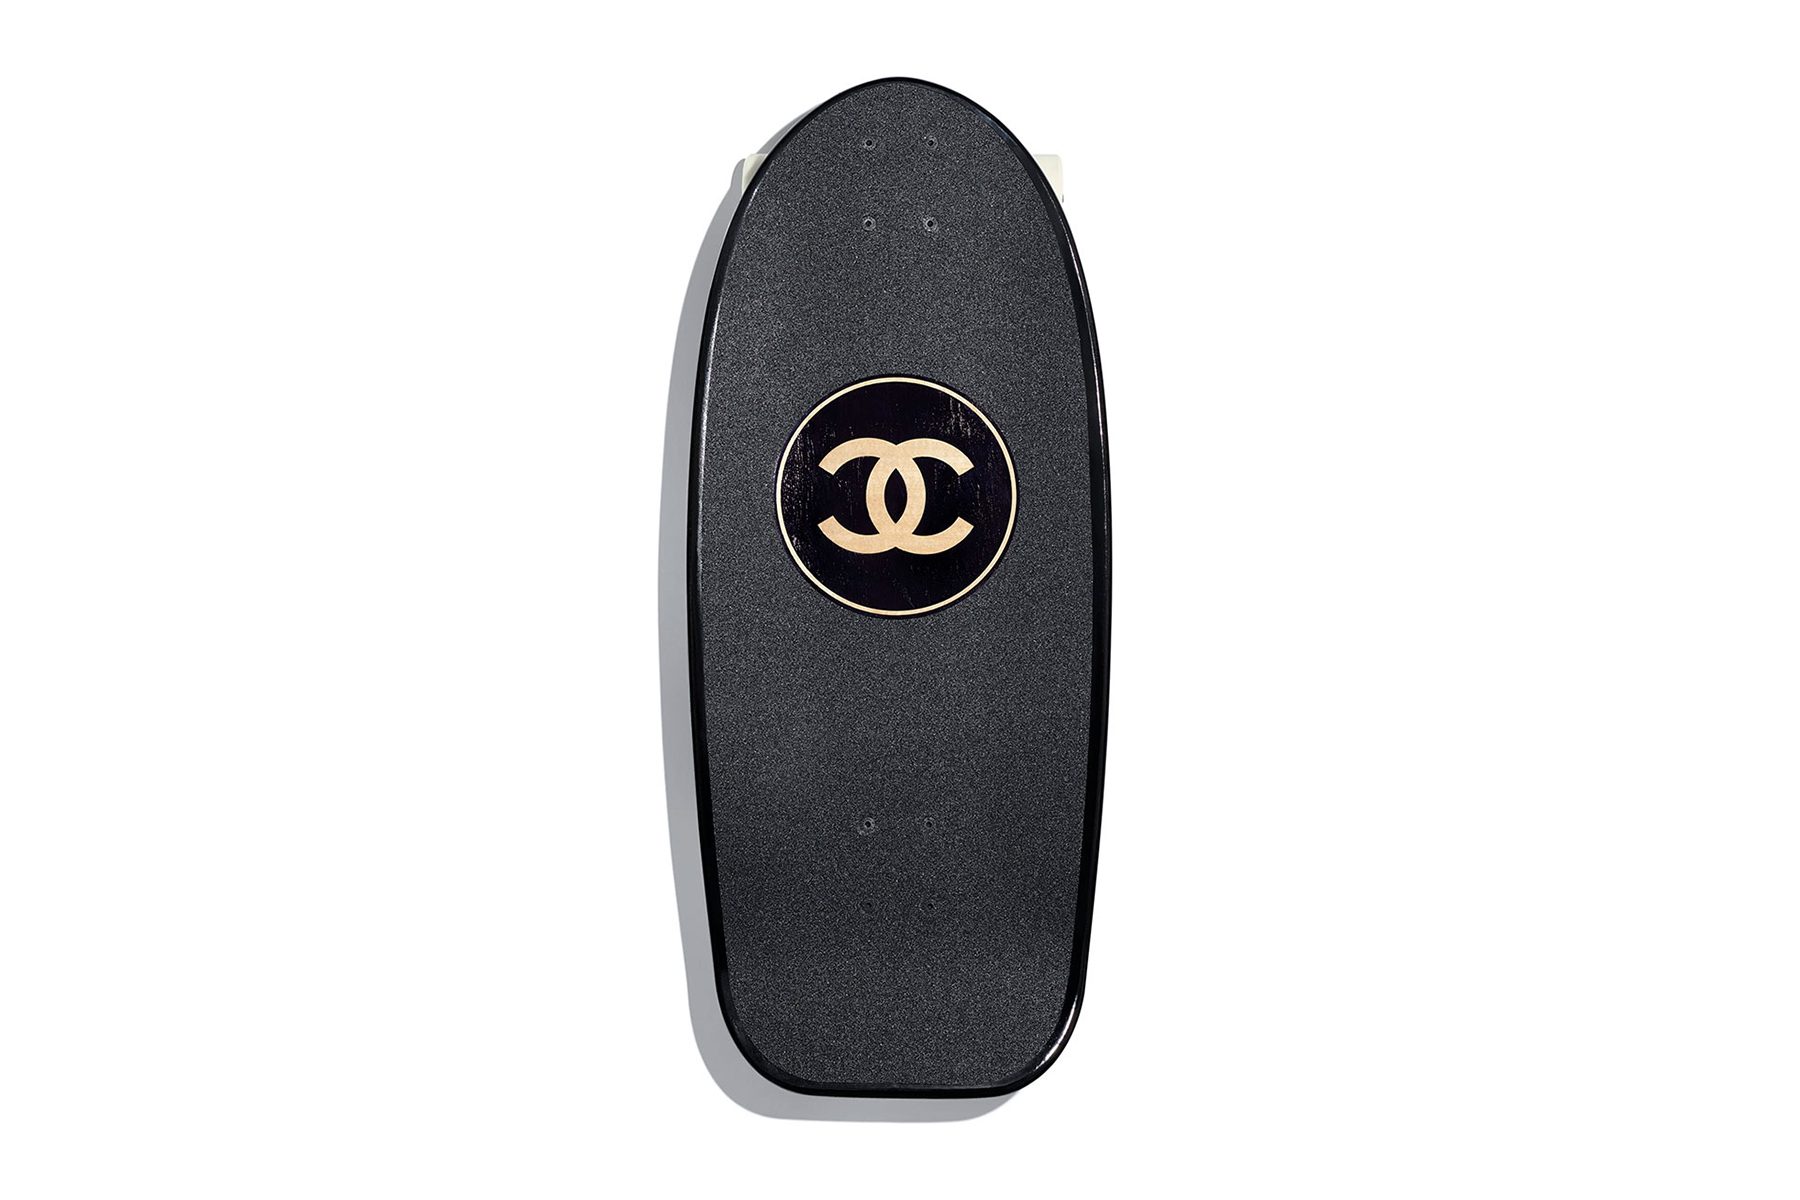 Chanel SS19 Surfboard & Skate Deck